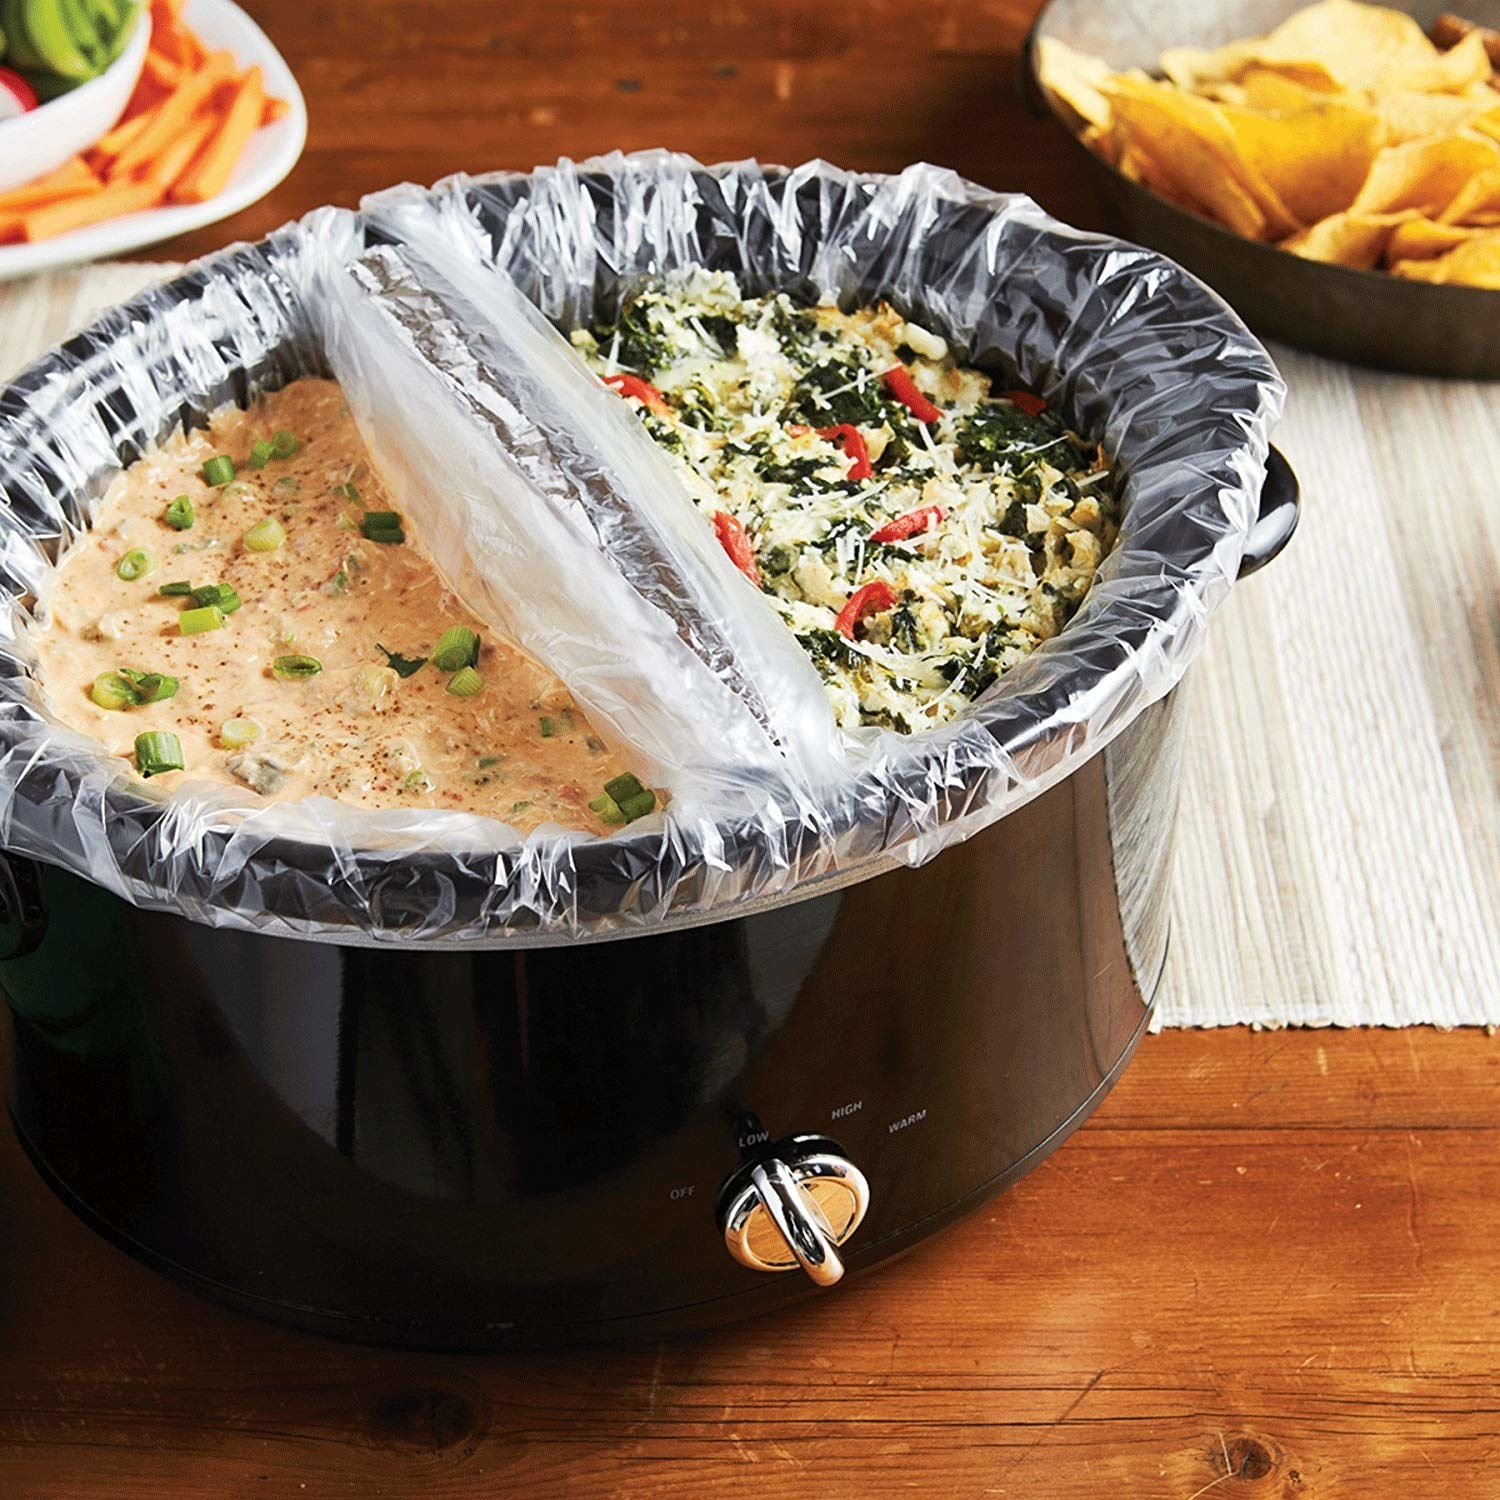 A slow cooker with two slow cooker liners inside of it